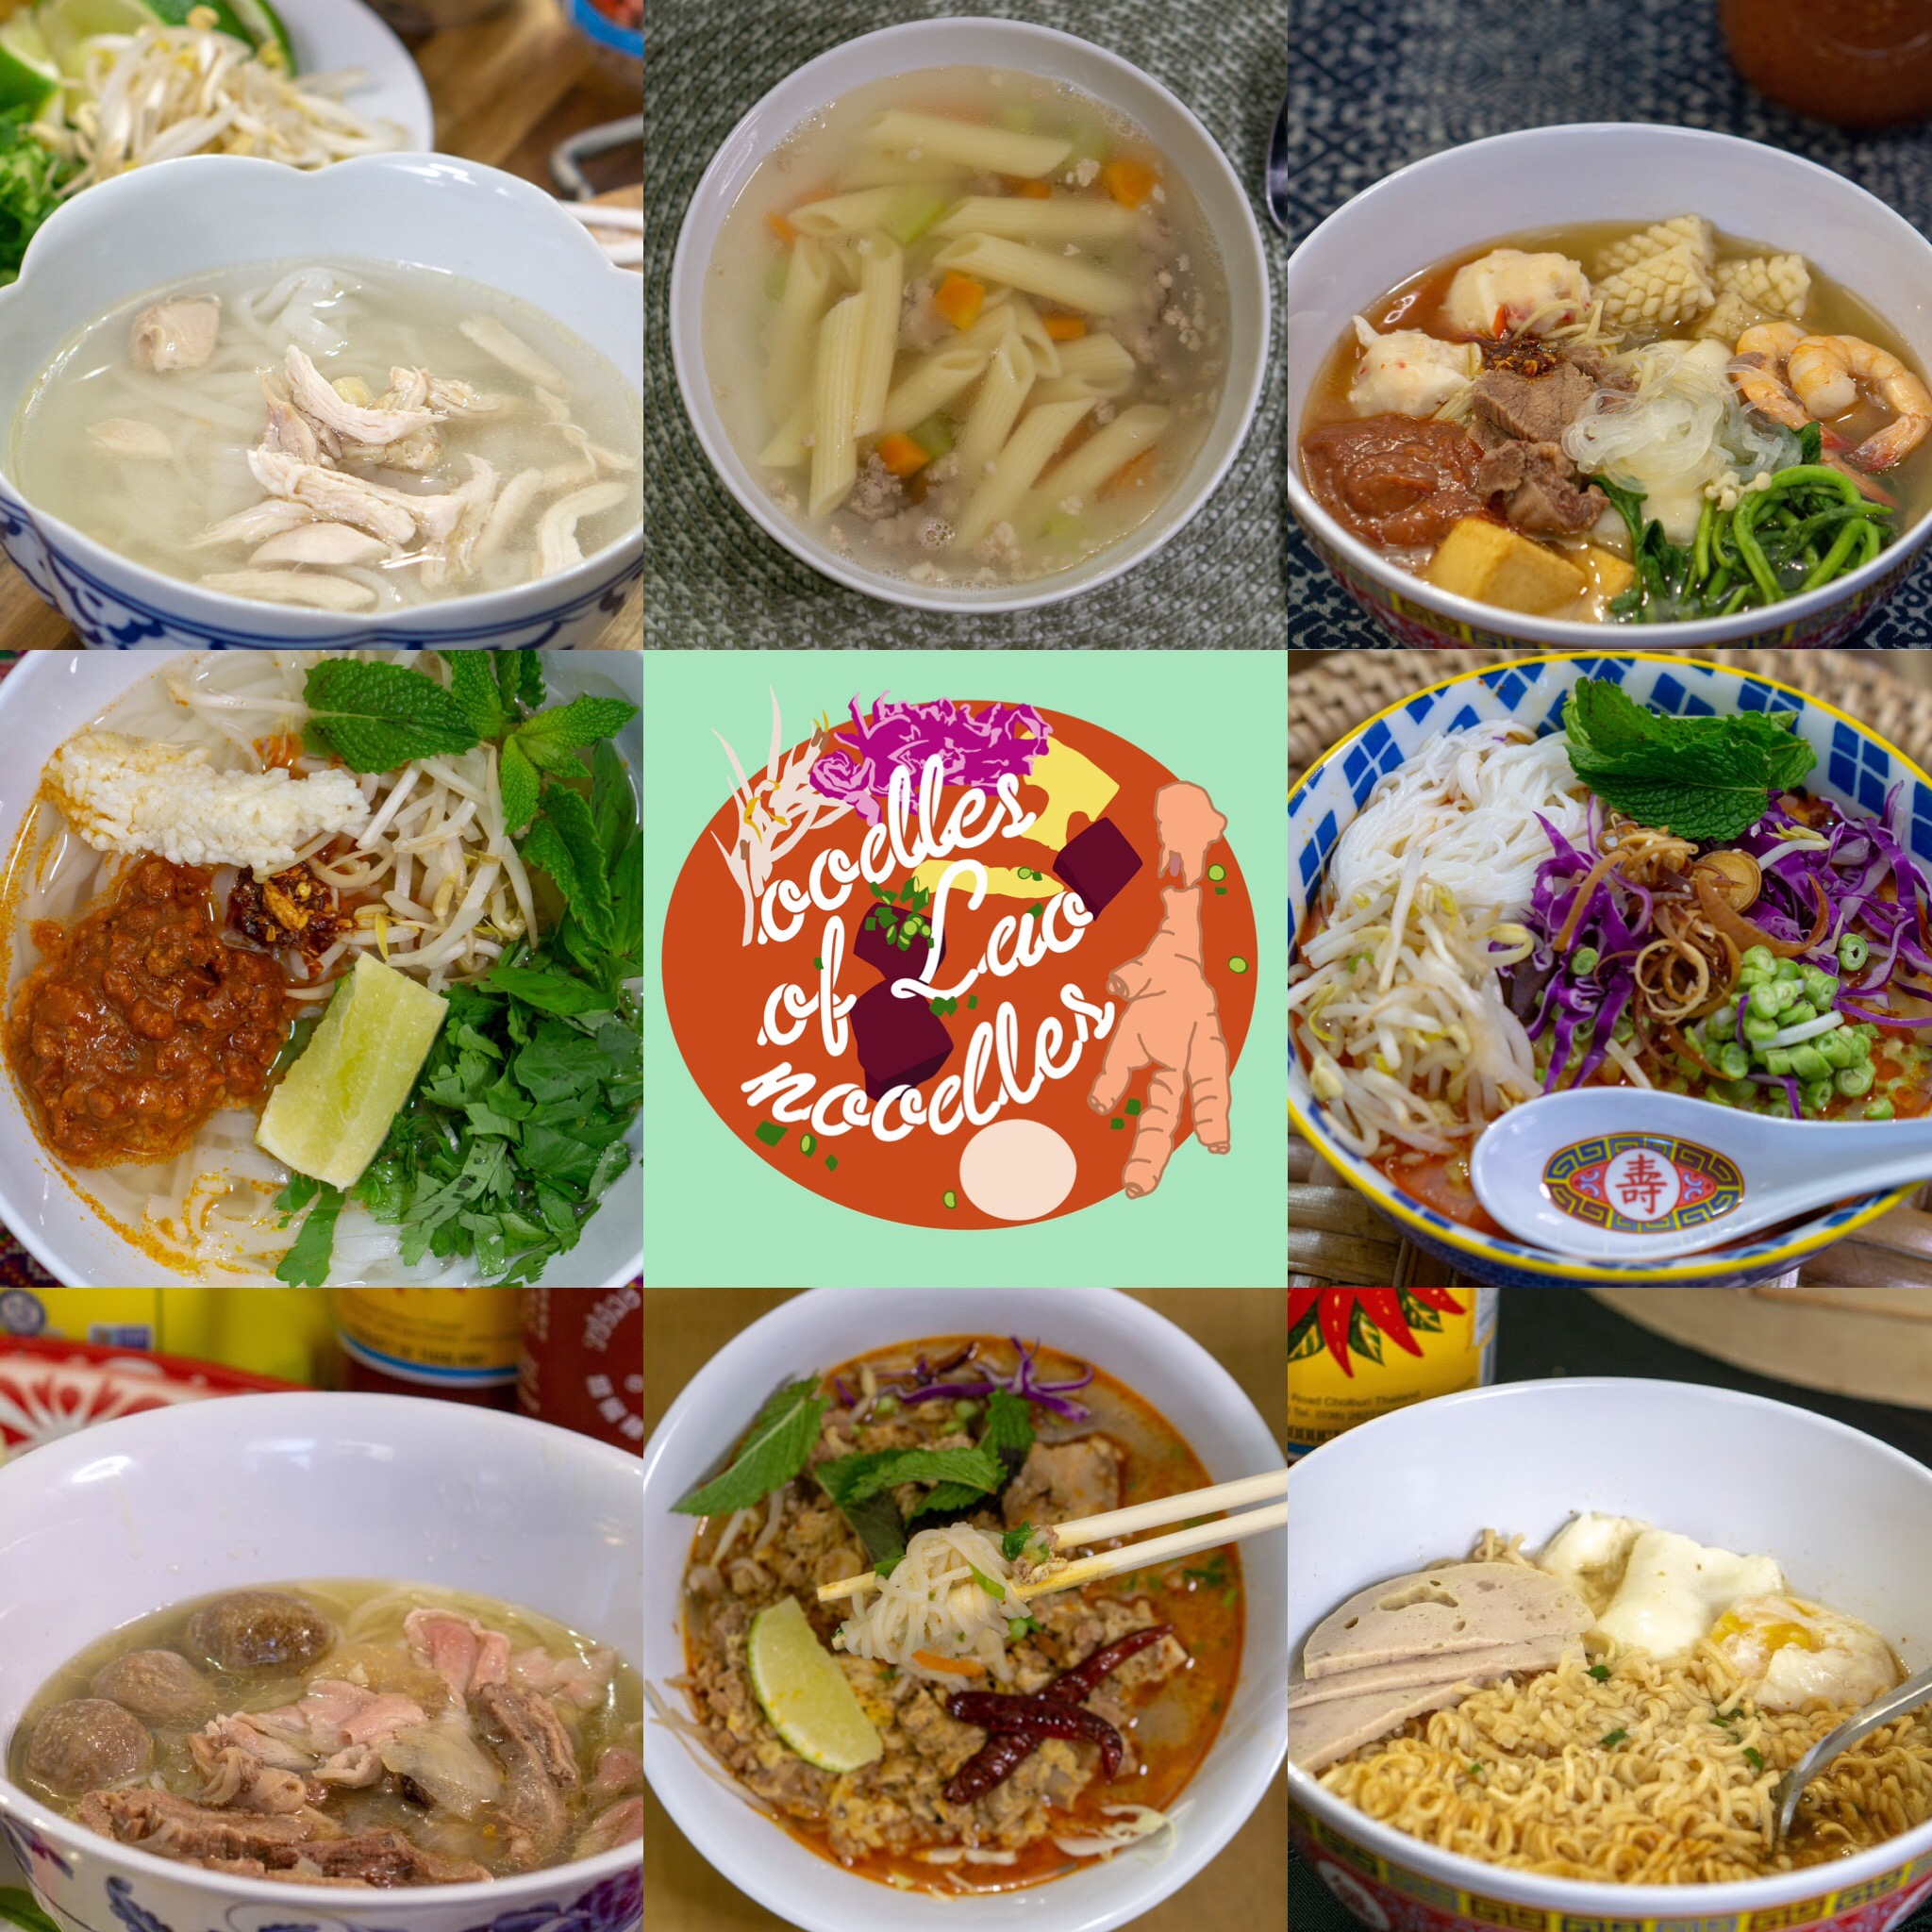 Oodles_of_Lao_Noodles_Collage.JPG